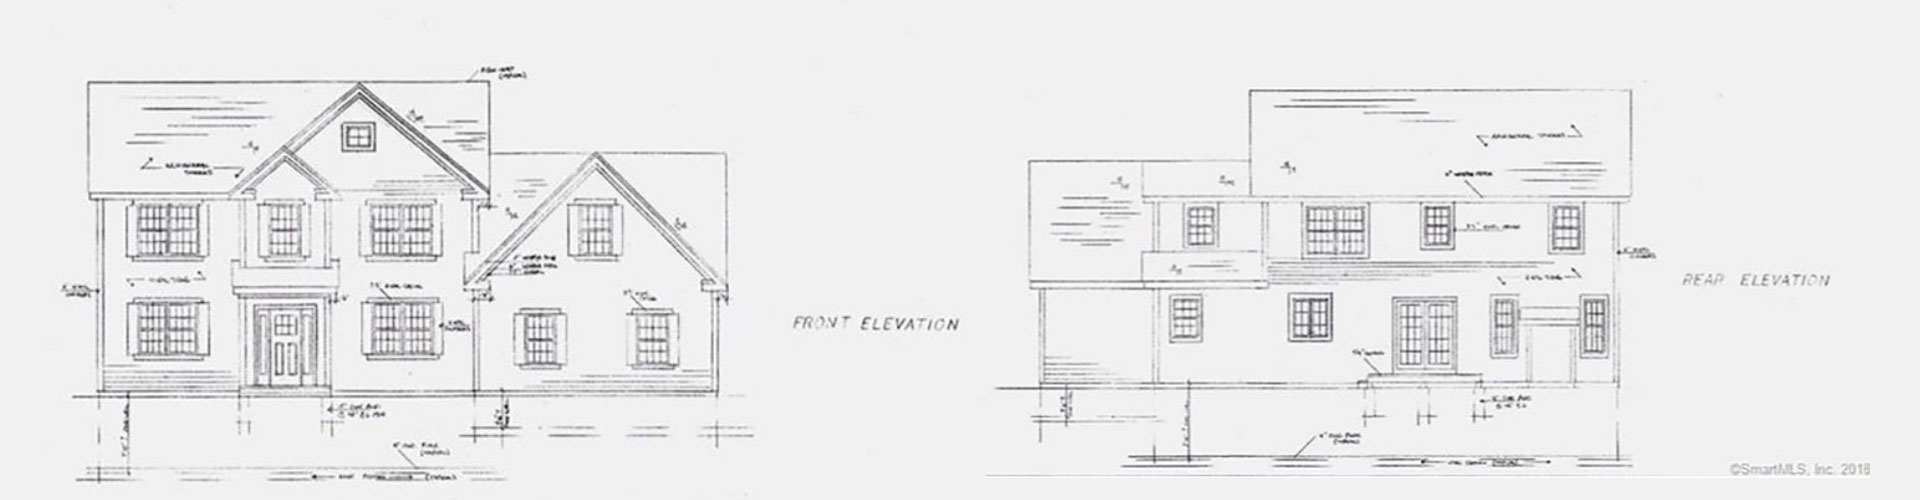 Custom home elevation drawing front and rear